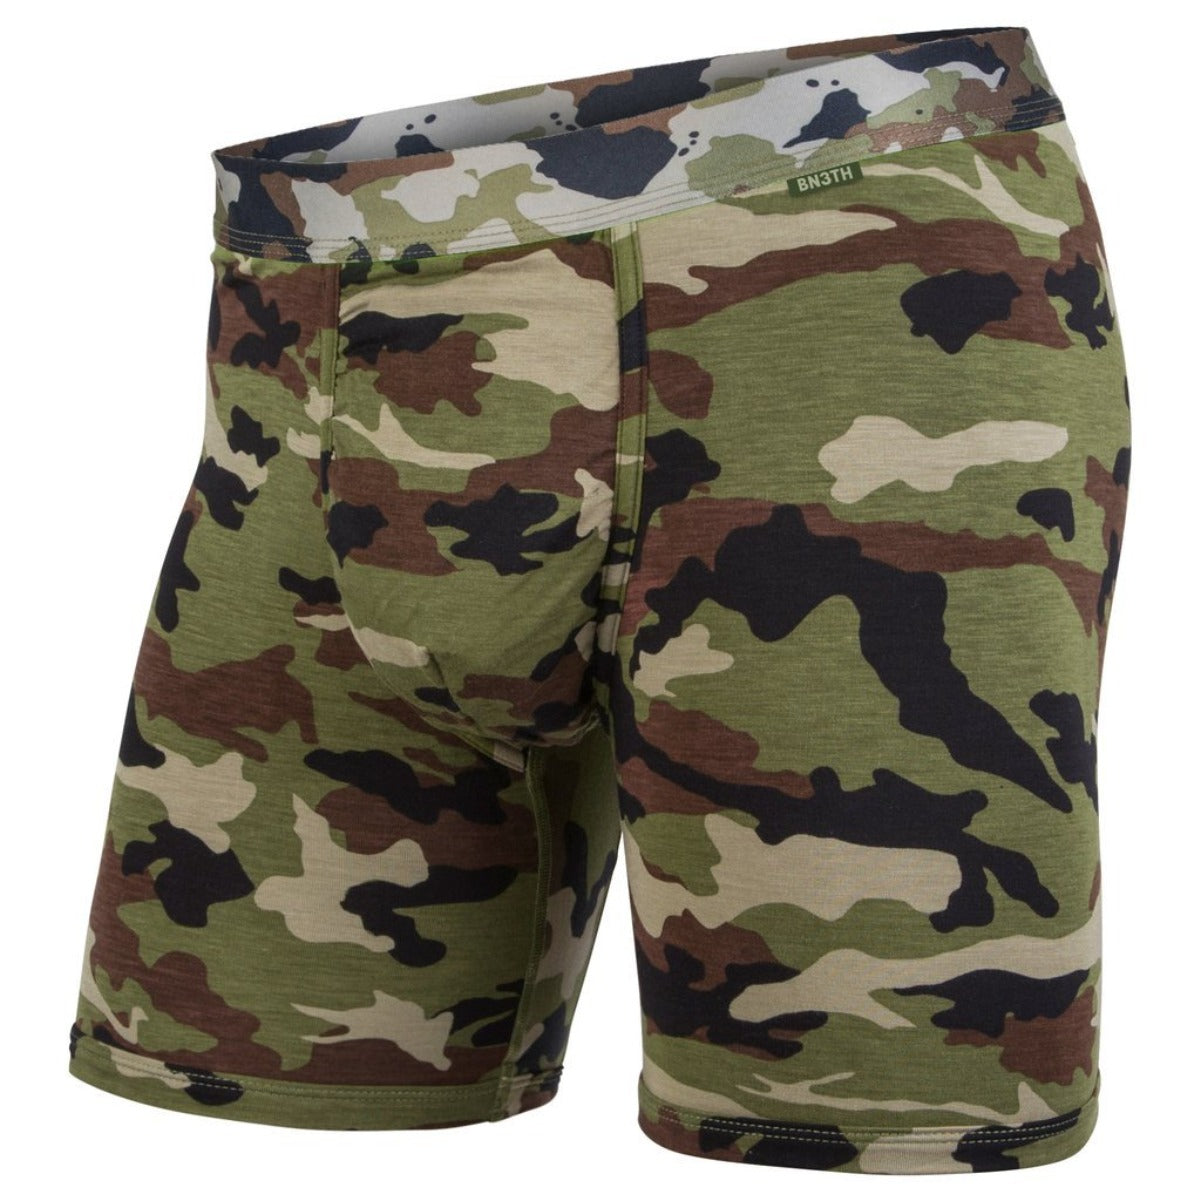 BN3TH - CLASSIC BOXER BRIEF IN CAMO